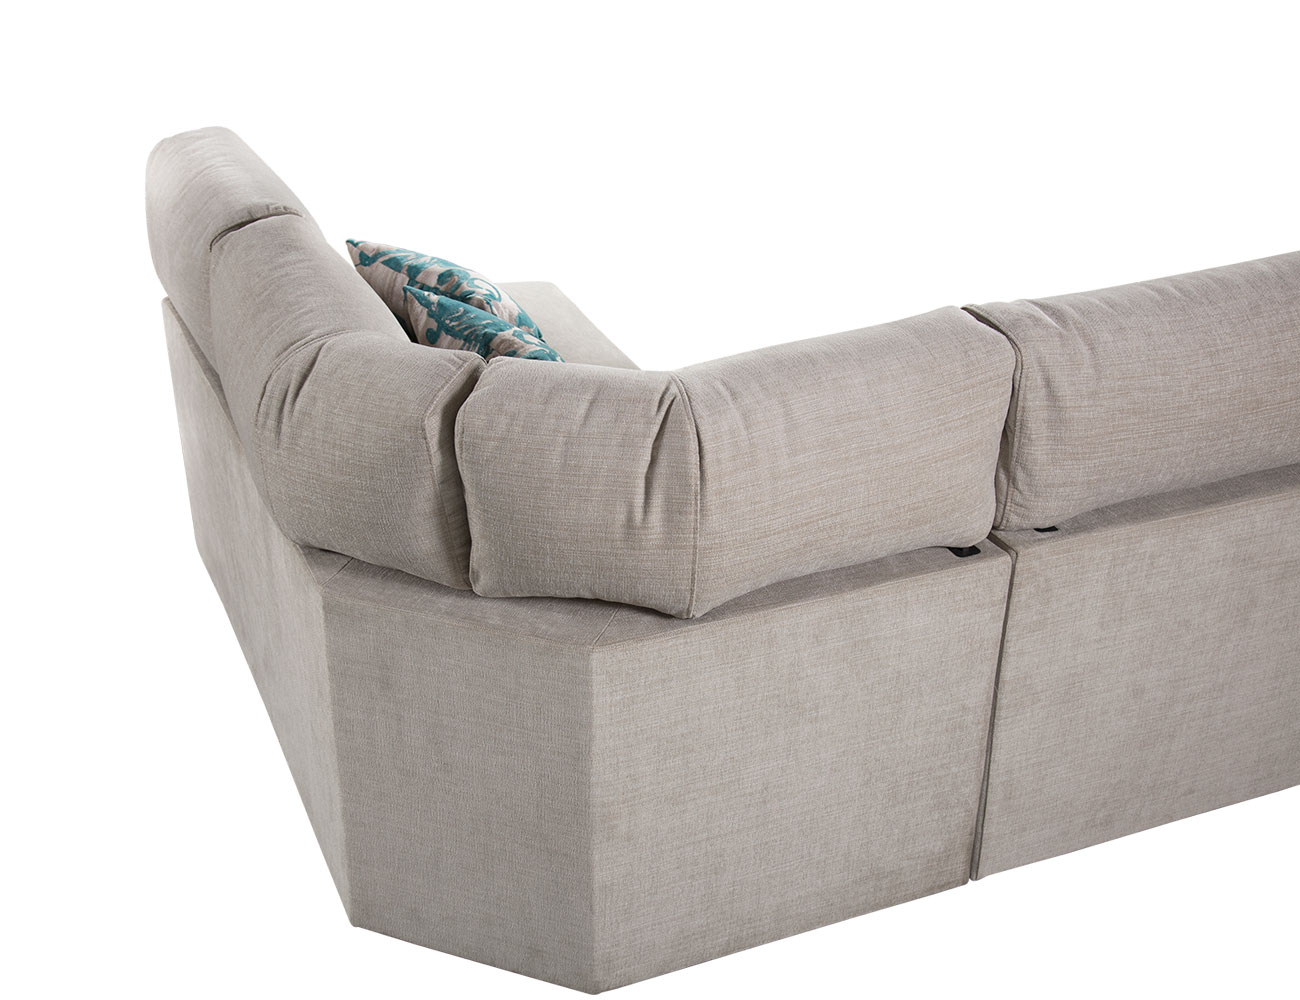 Sofa chaiselongue rincon1